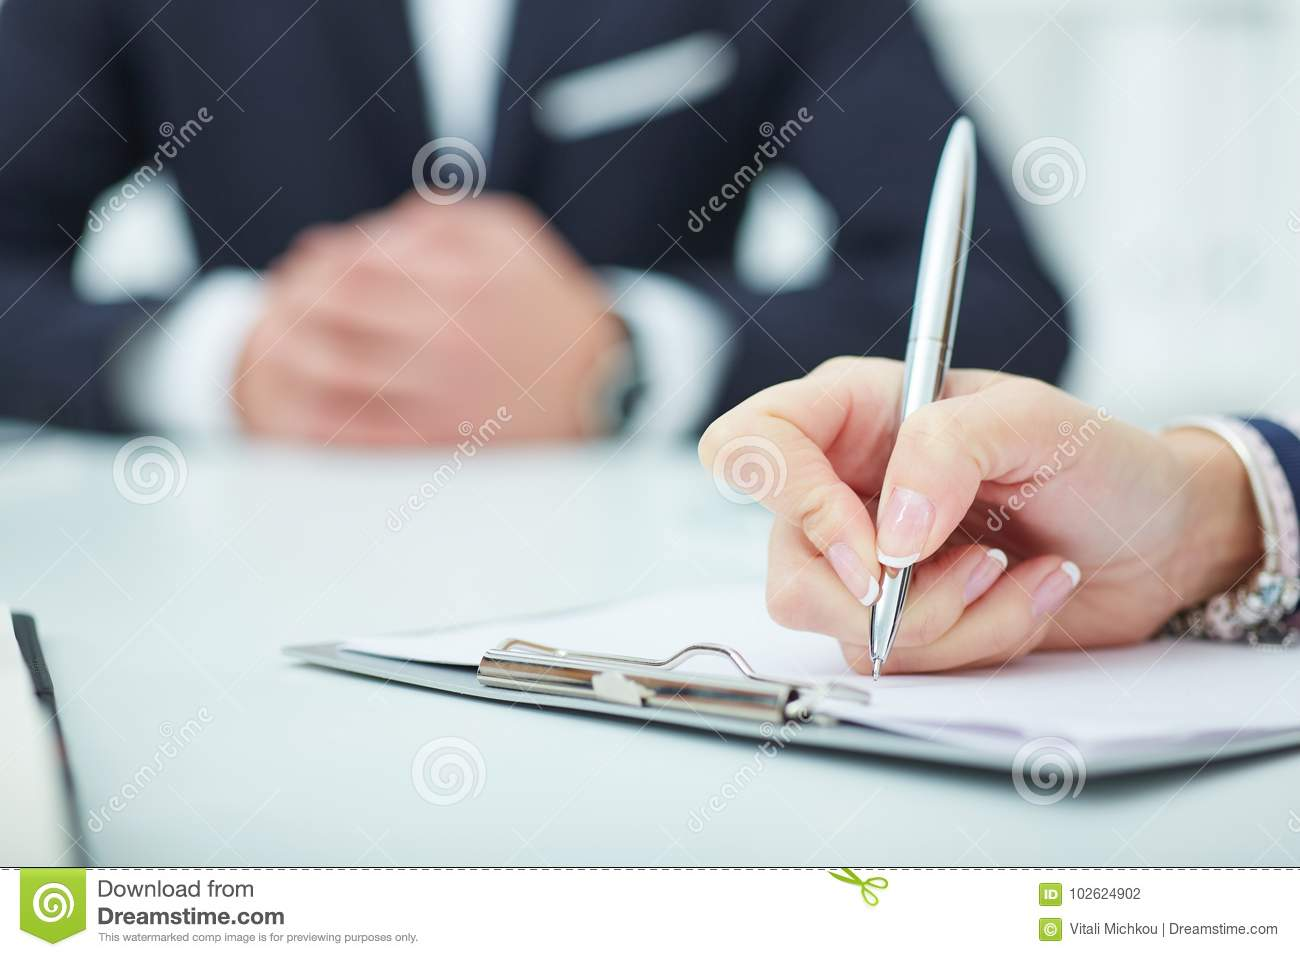 Business woman making notes at office workplace. Business job offer, financial success, certified public accountant concept.